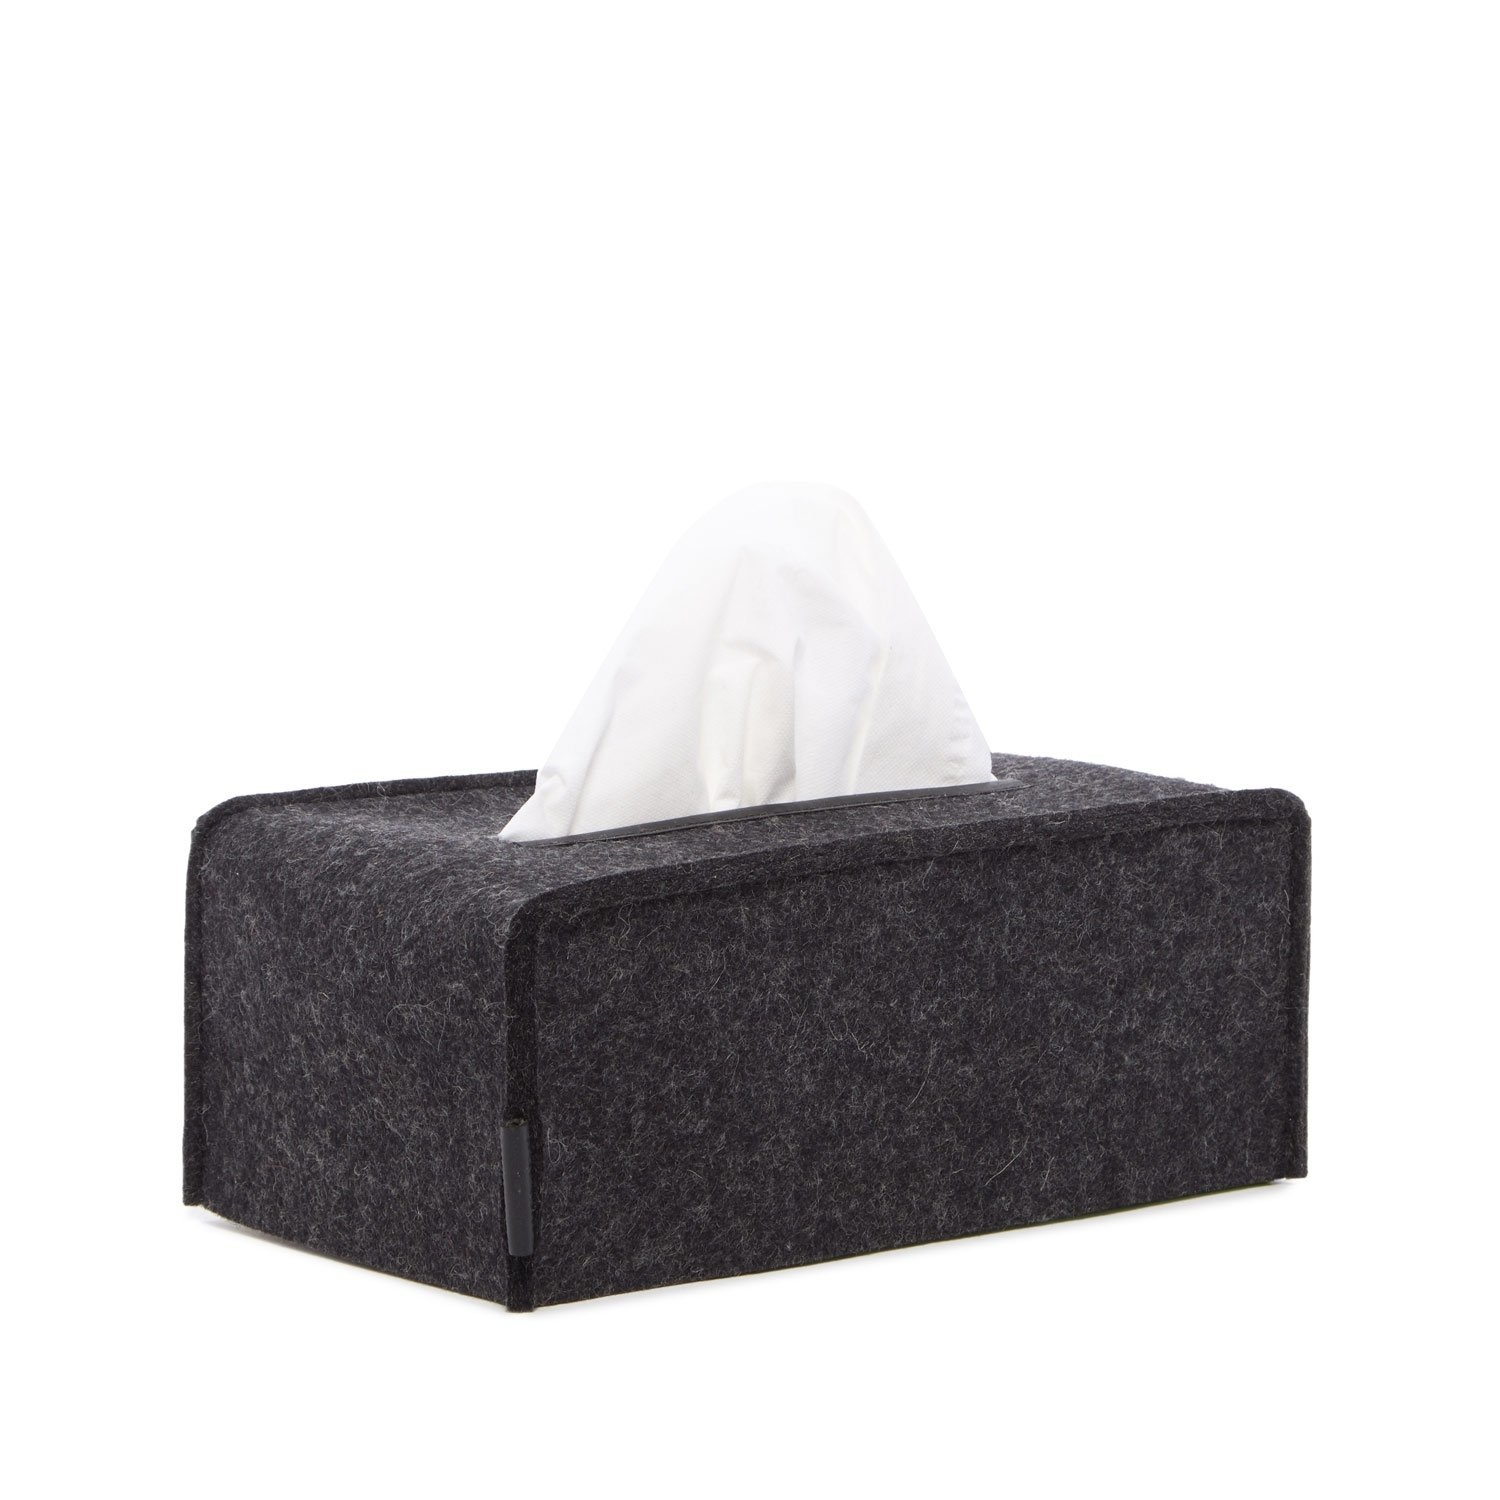 Felt Tissue Box Cover Large - Charcoal-1